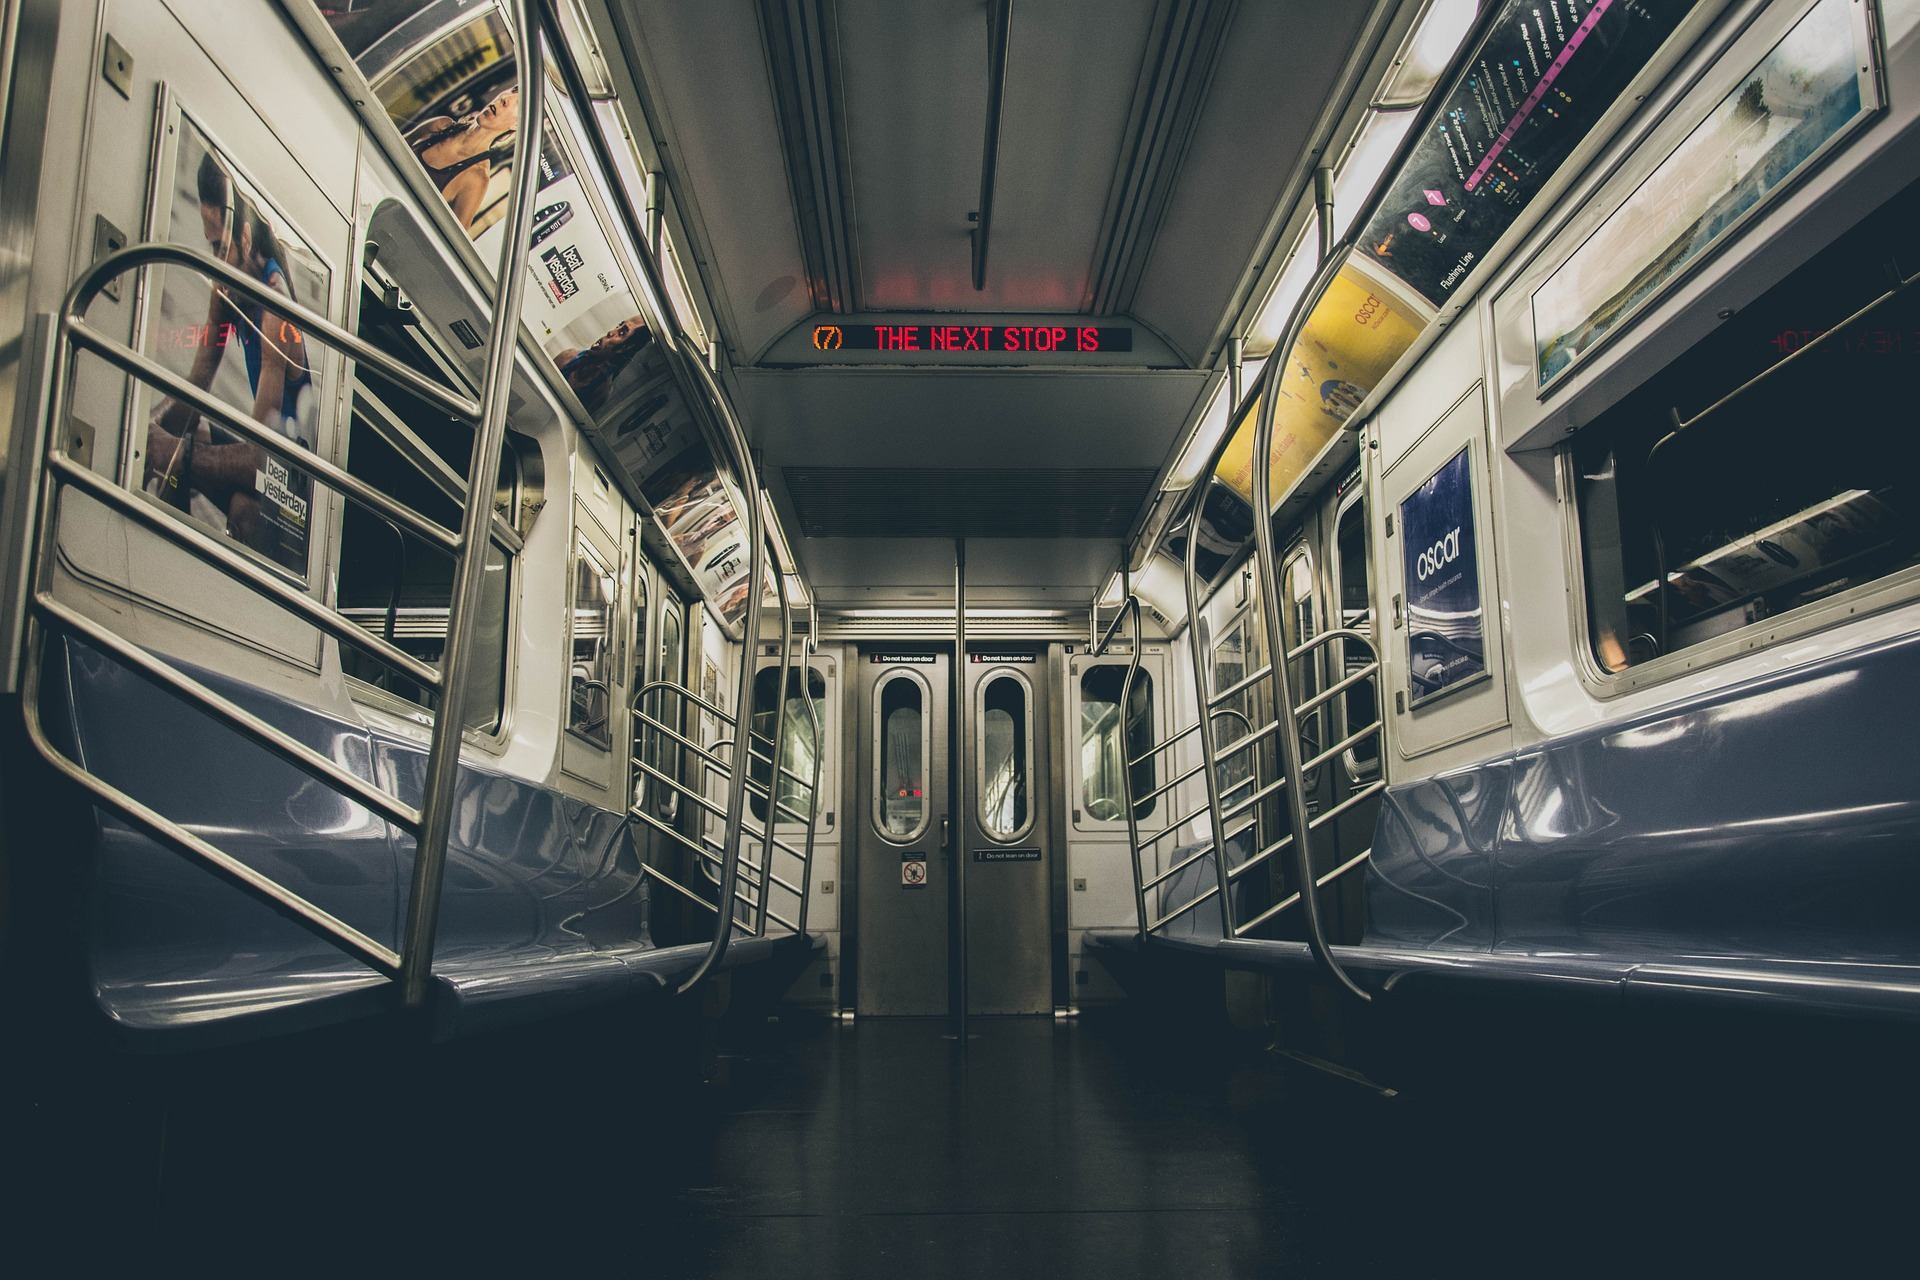 A new study has found that underground transit routes are likely to contain higher levels of carcinogens in the air.